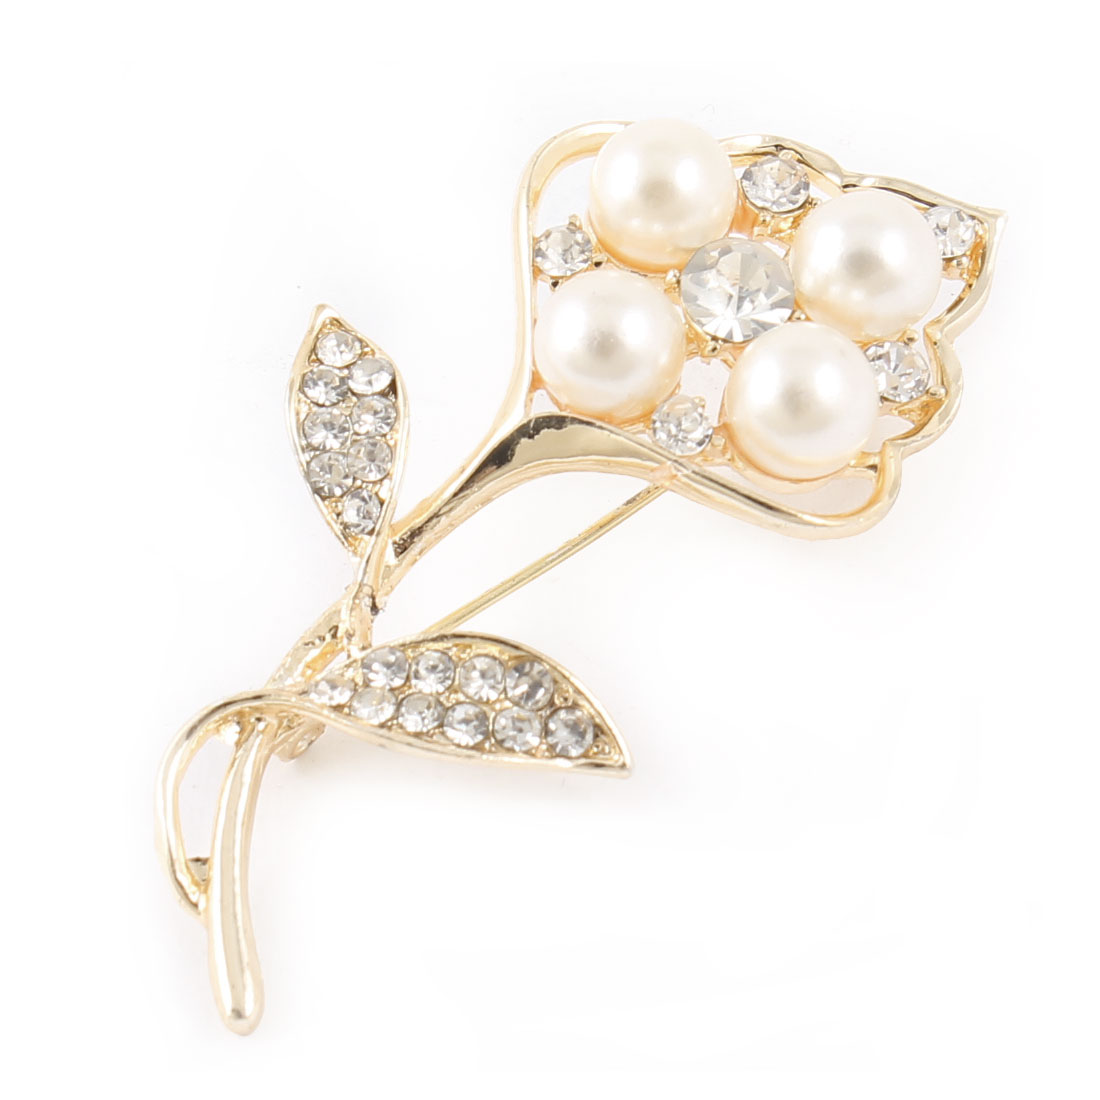 Girl Banquet Plastic Imitation Pearls Rhinestone Accent Safety Pin Brooch Gold Tone